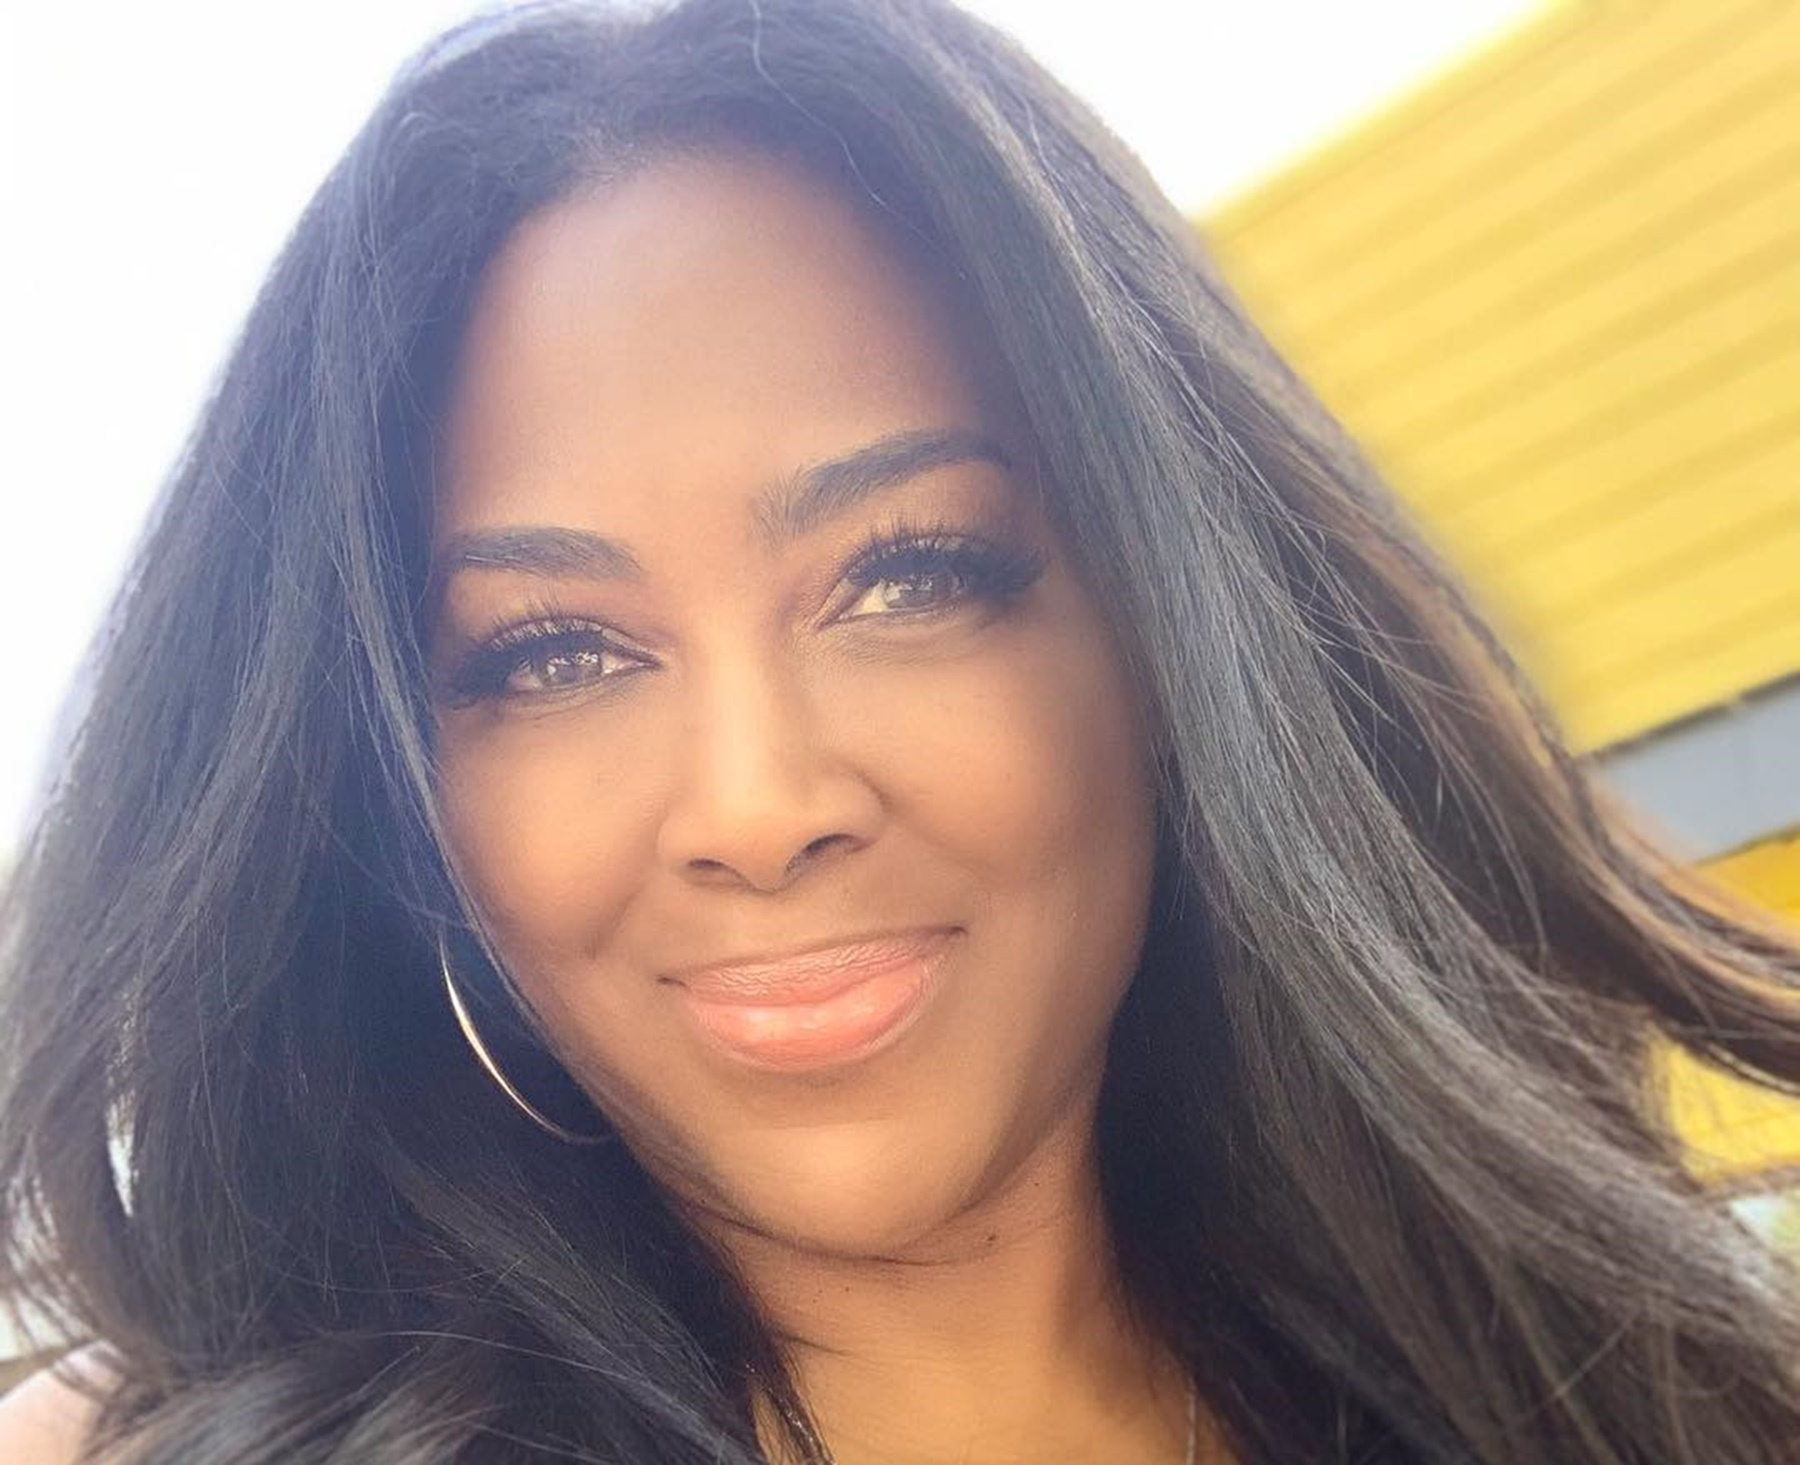 kenya-moore-lands-in-trouble-with-critics-for-pushing-controversial-product-see-marc-dalys-wifes-response-to-the-drama